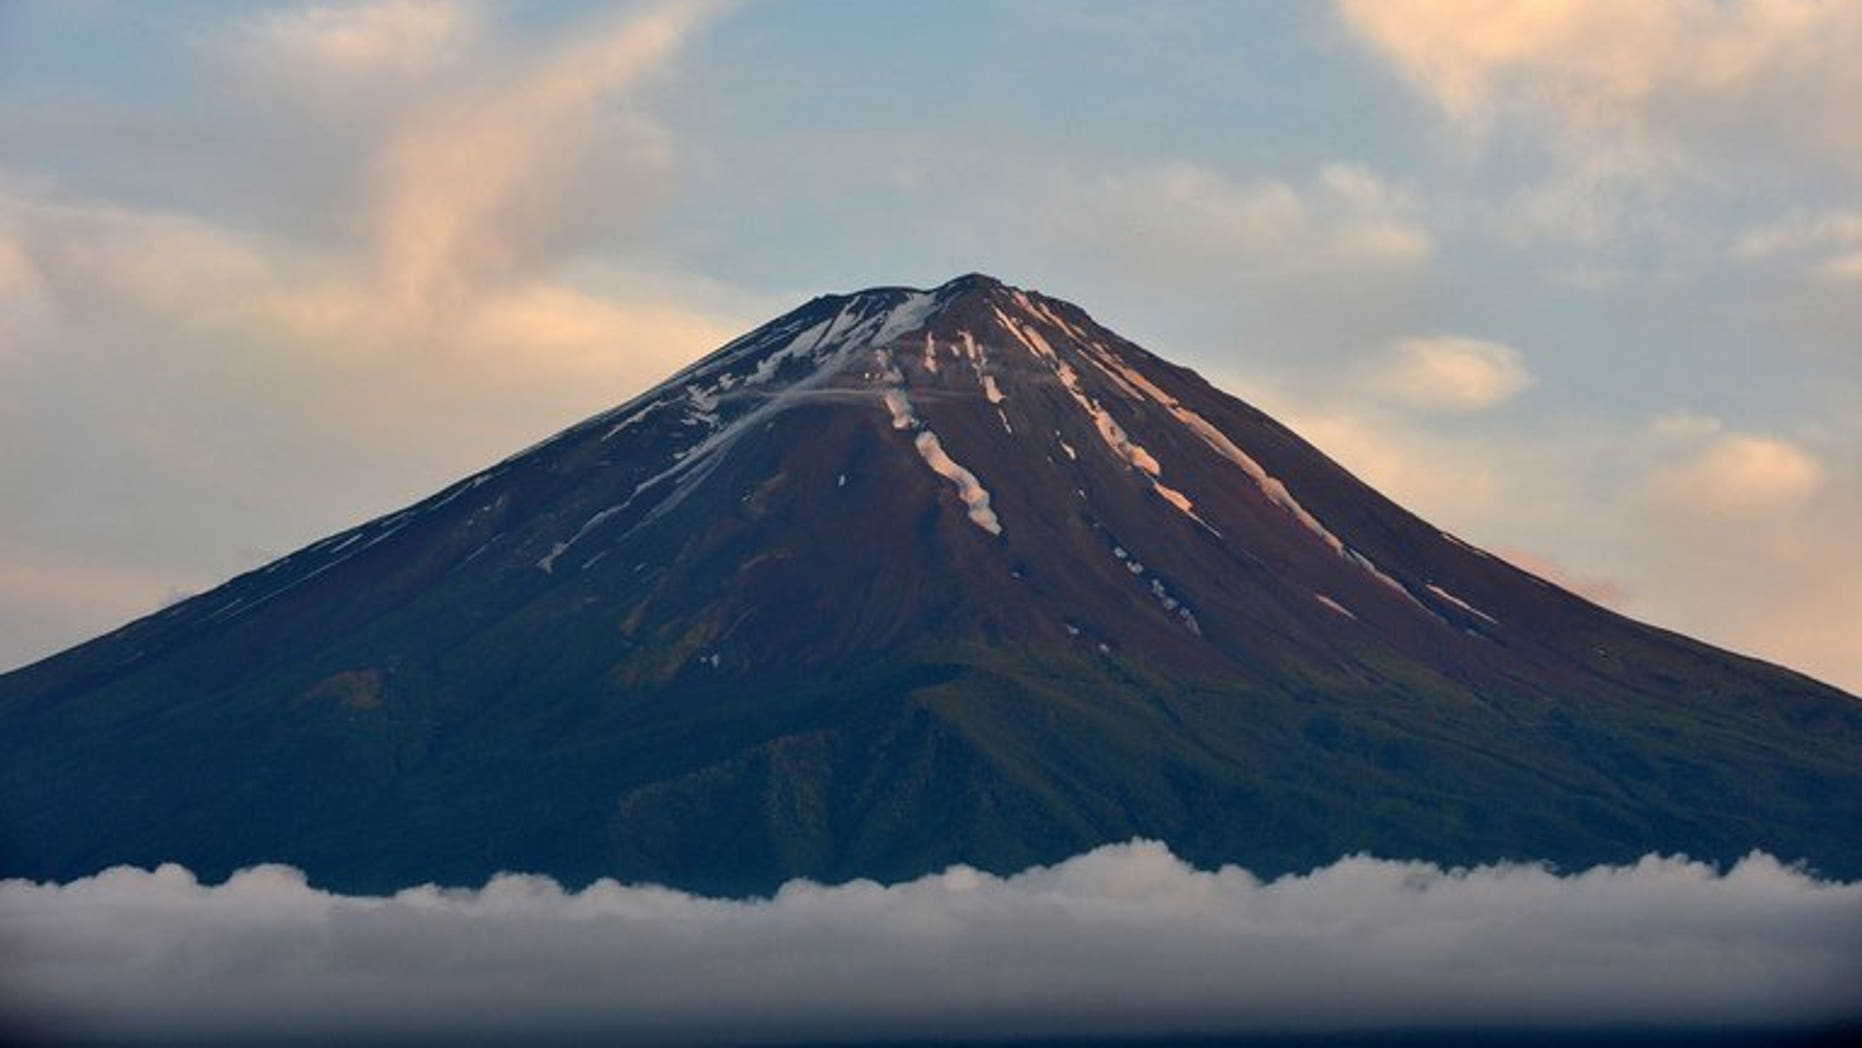 This picture taken on June 16, 2013 shows Mount Fuji, the highest mountain in Japan at 3,776 metres (12,460 feet) in Fujikawaguchiko. UNESCO confirms that Mount Fuji -- known for its perfectly cone-shaped volcano -- has been granted World Heritage status.